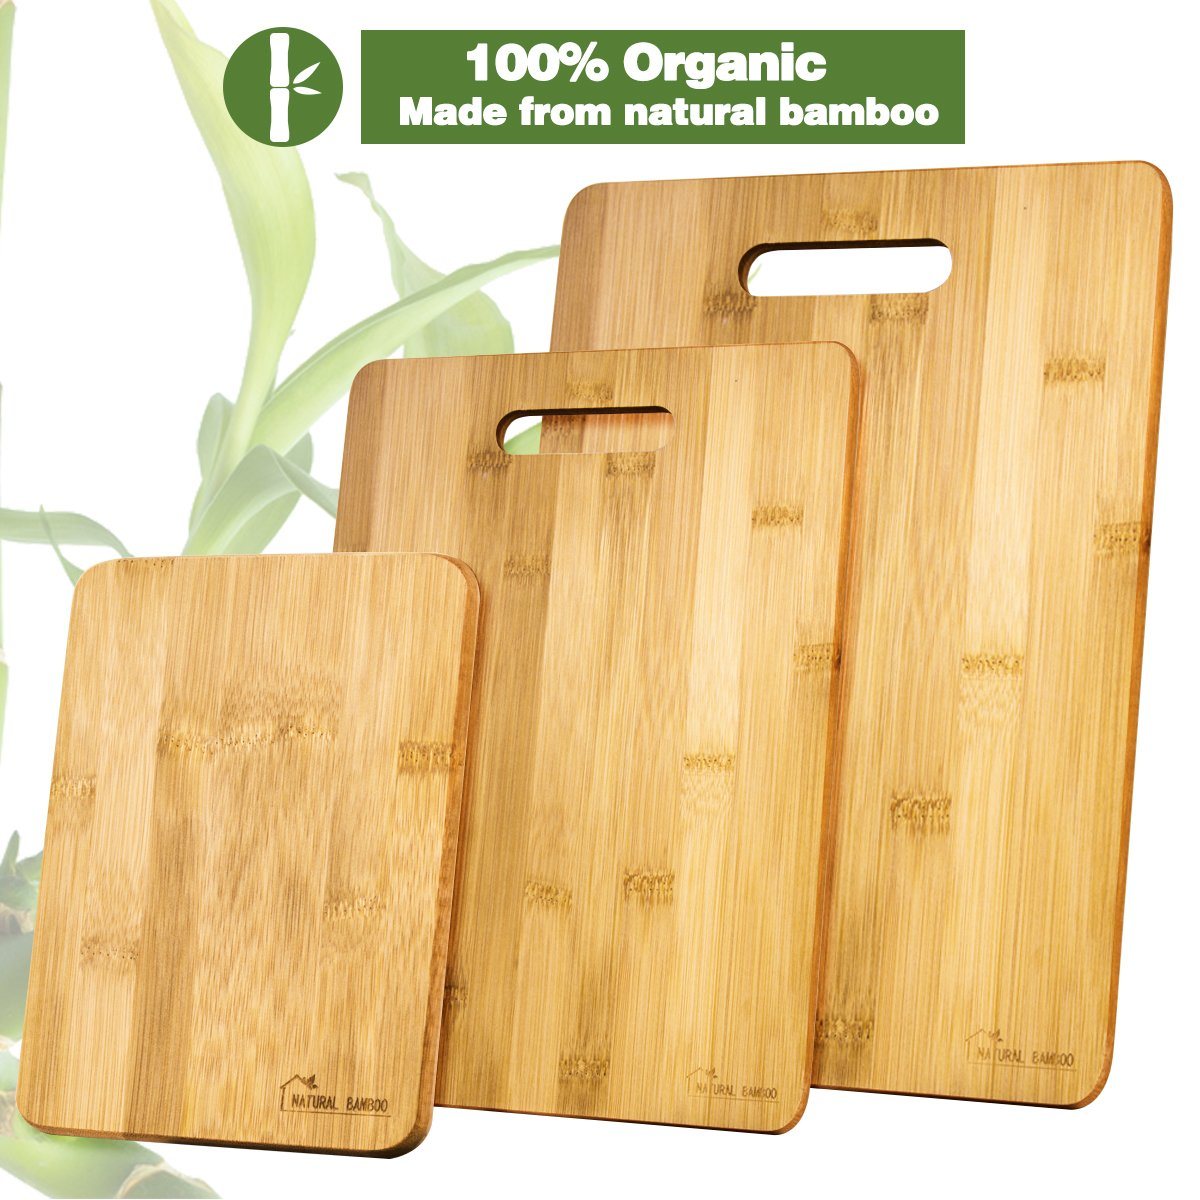 Bamboo Cutting Board [Set of 3], Natural Bamboo 100% Premium Organic; Cutting & Serving Board Set; Used for Cut Food Prep, Meat, Vegetables, Bread, Crackers & Cheese ([Set of 3]) by Natural Bamboo (Image #2)